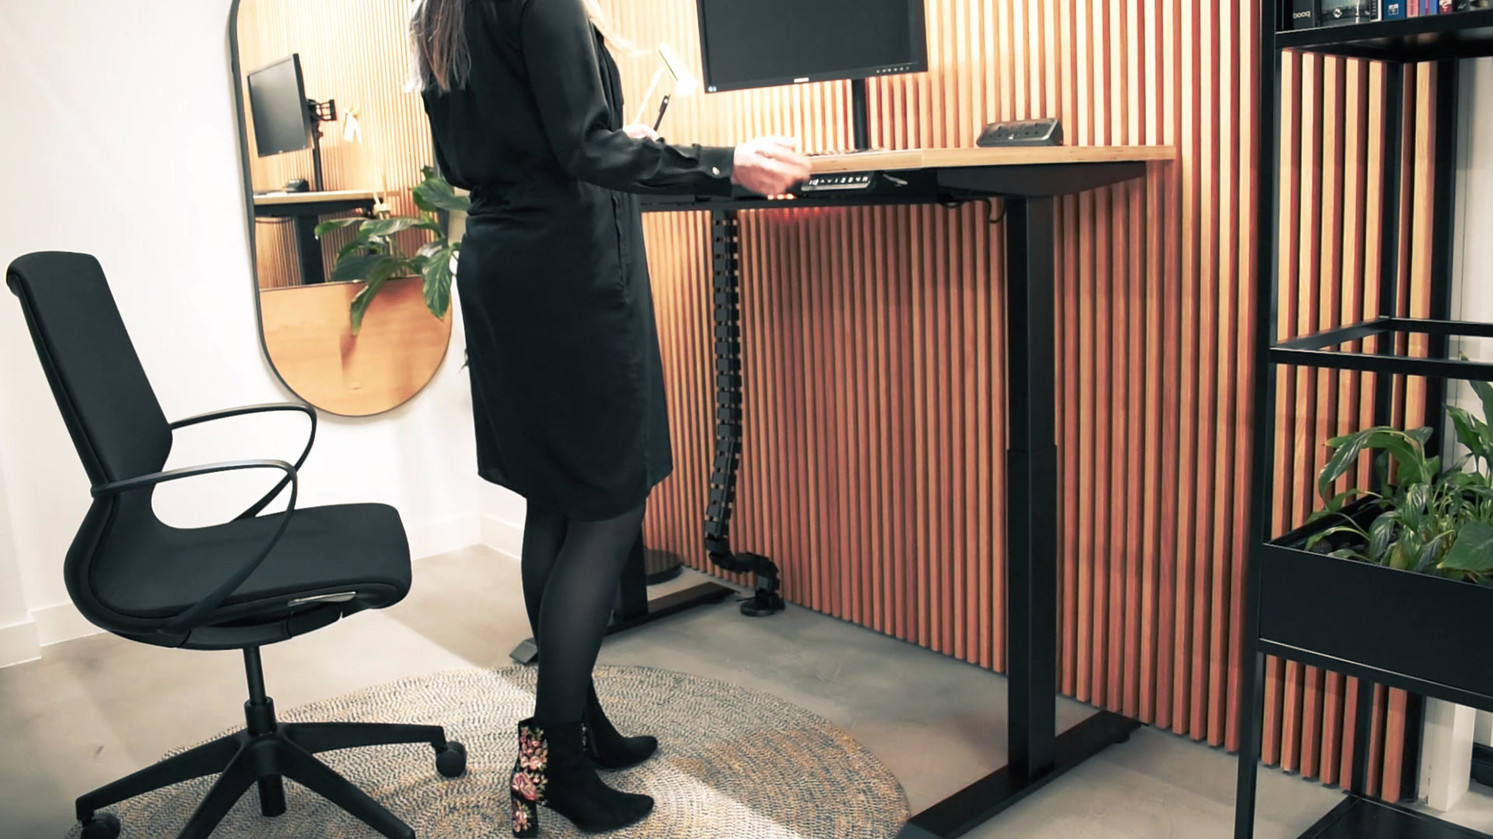 Workstories - Sit-Stand Solo product video.mp4